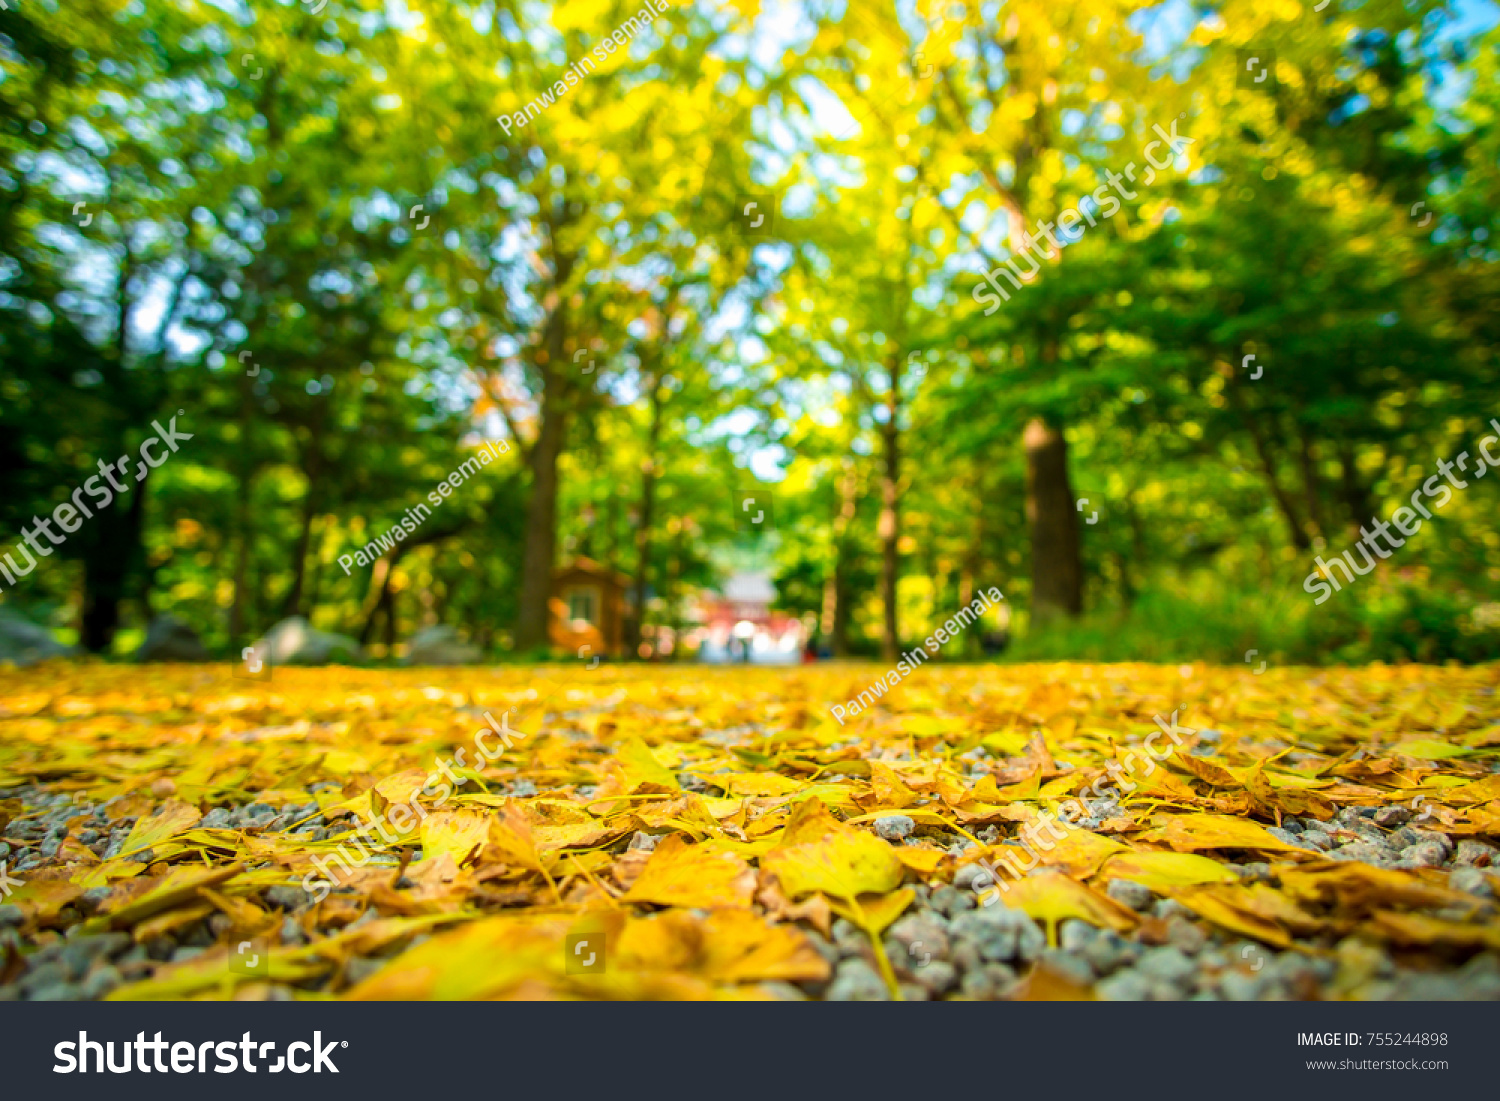 Yellow Ginkgo Leaves Fall On Ground Stock Photo (Edit Now) 755244898 ...